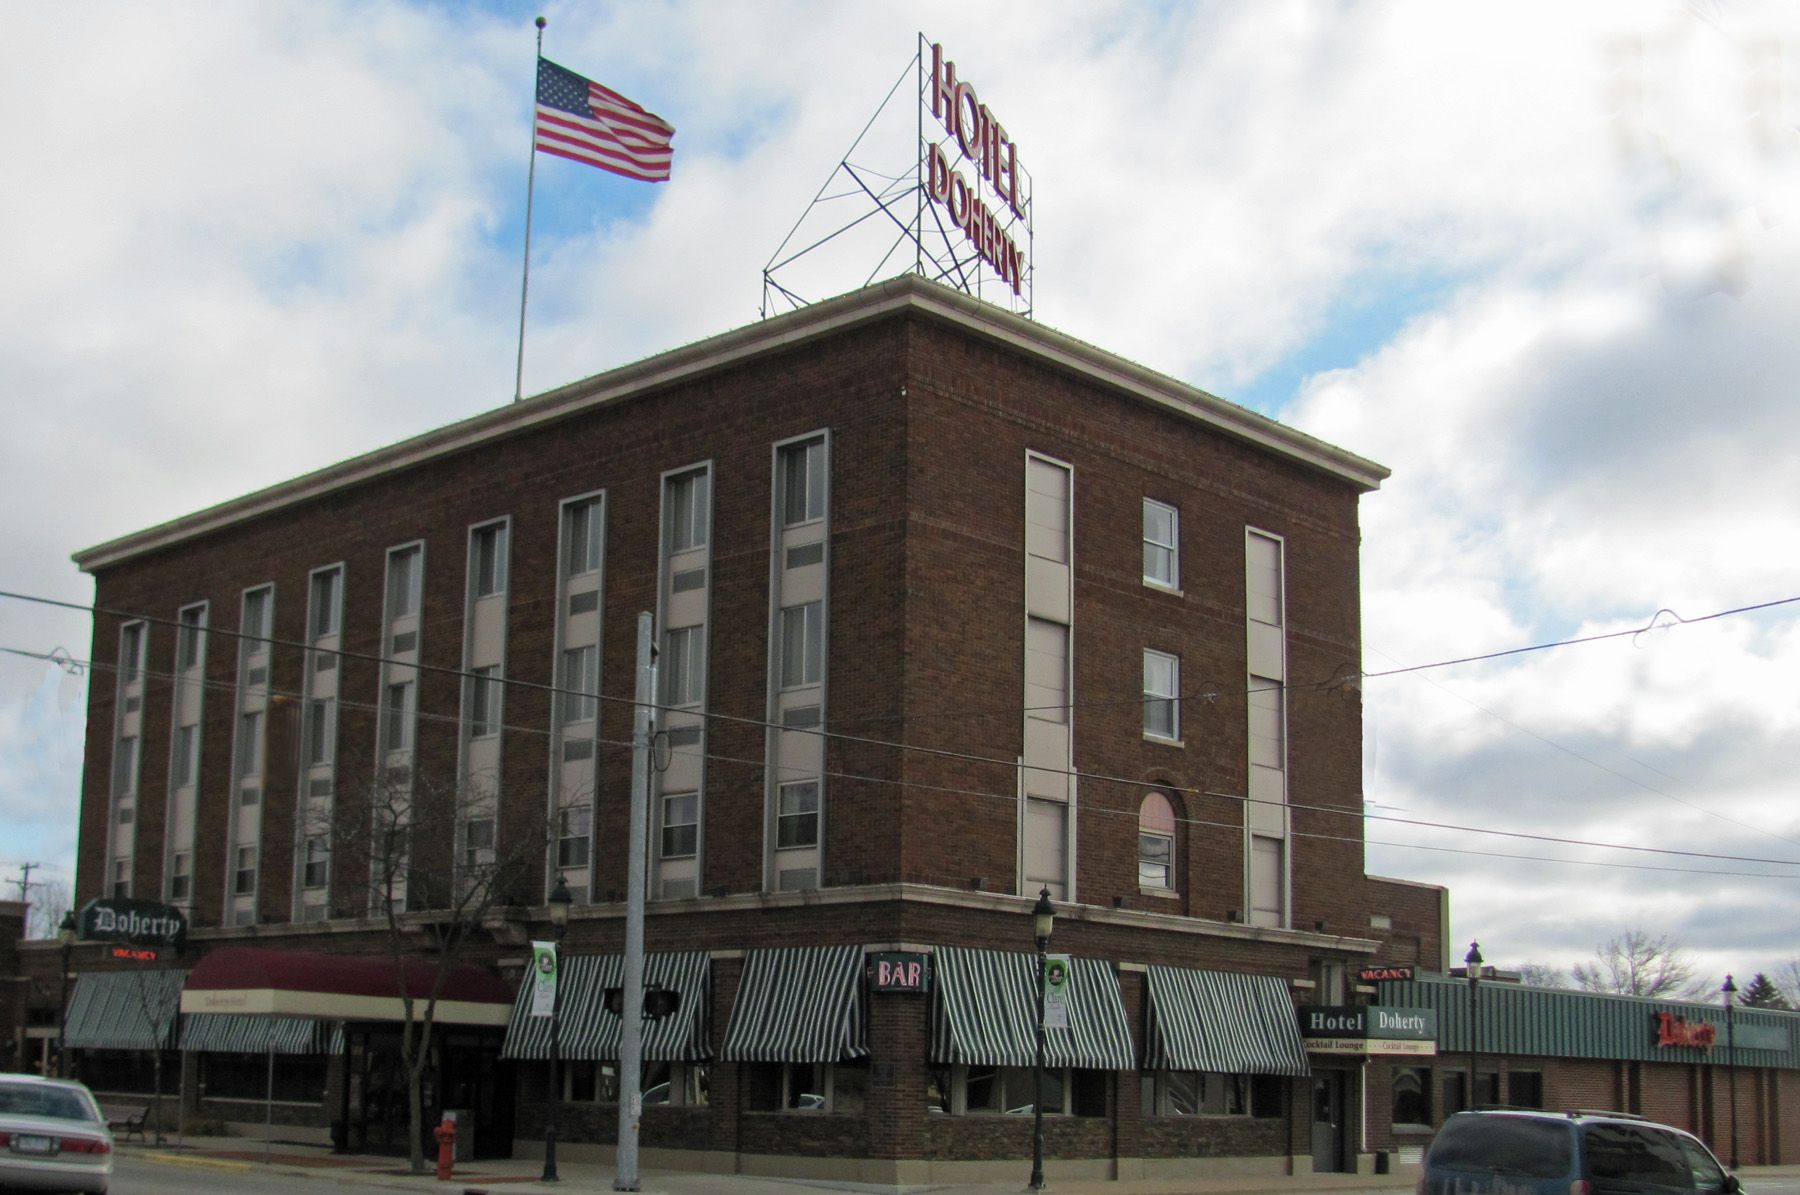 Doherty Hotel Clare Michigan The Was A Notorious Hangout For Gangsters In